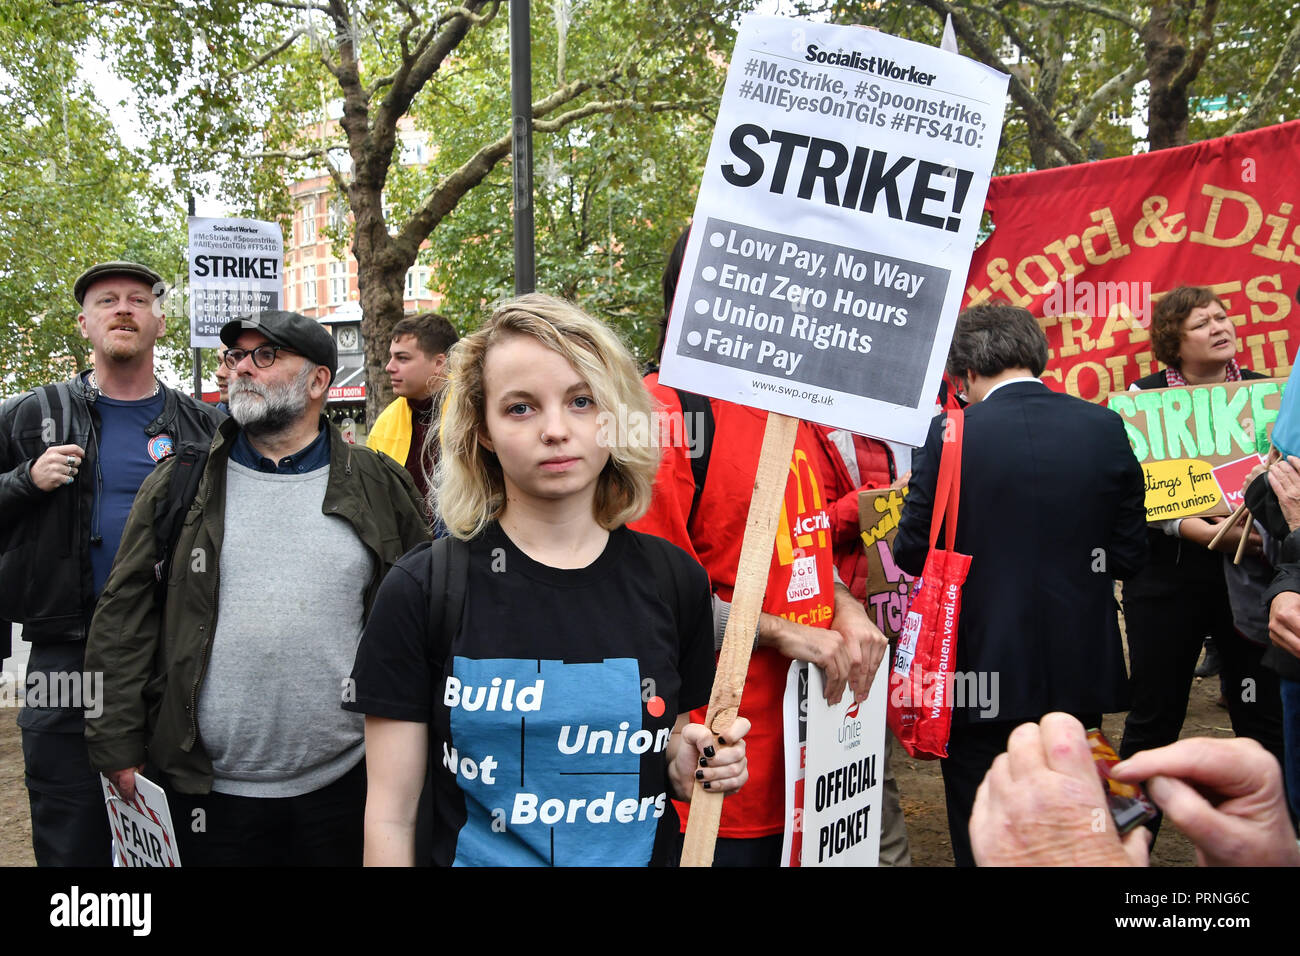 London, UK. 4th Oct 2018. Hundreds workers united from American, Brazil Thailand and UK Rally for McDonald's, TGI Fridays & Wetherspoons Strikers. Protestors demand £10 an hour at Leicester Square, London, UK. 4th October 2018. Credit: Picture Capital/Alamy Live News - Stock Image